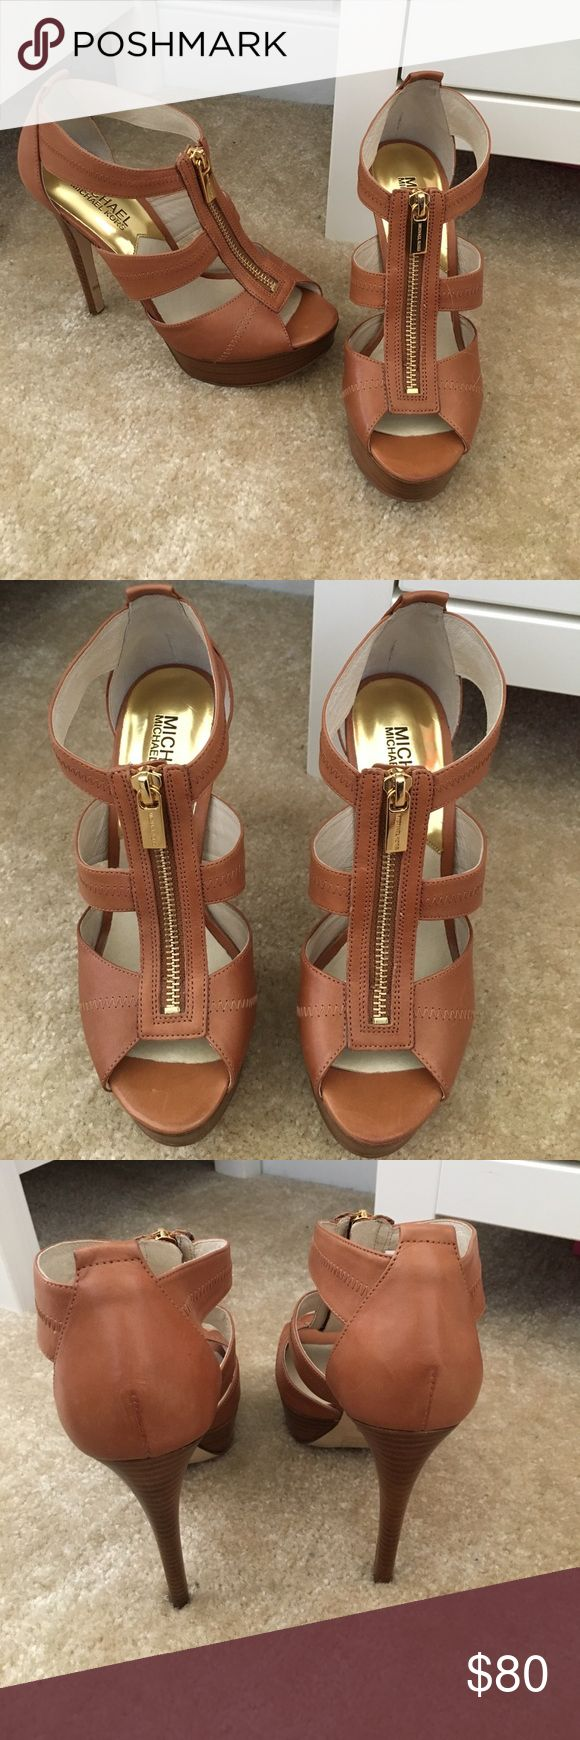 NEW Brown Michael Kors heels size 6.5 New worn once for grad pictures! Beautiful brown Michael kors heels. Make an offer!! Michael Kors Shoes Heels